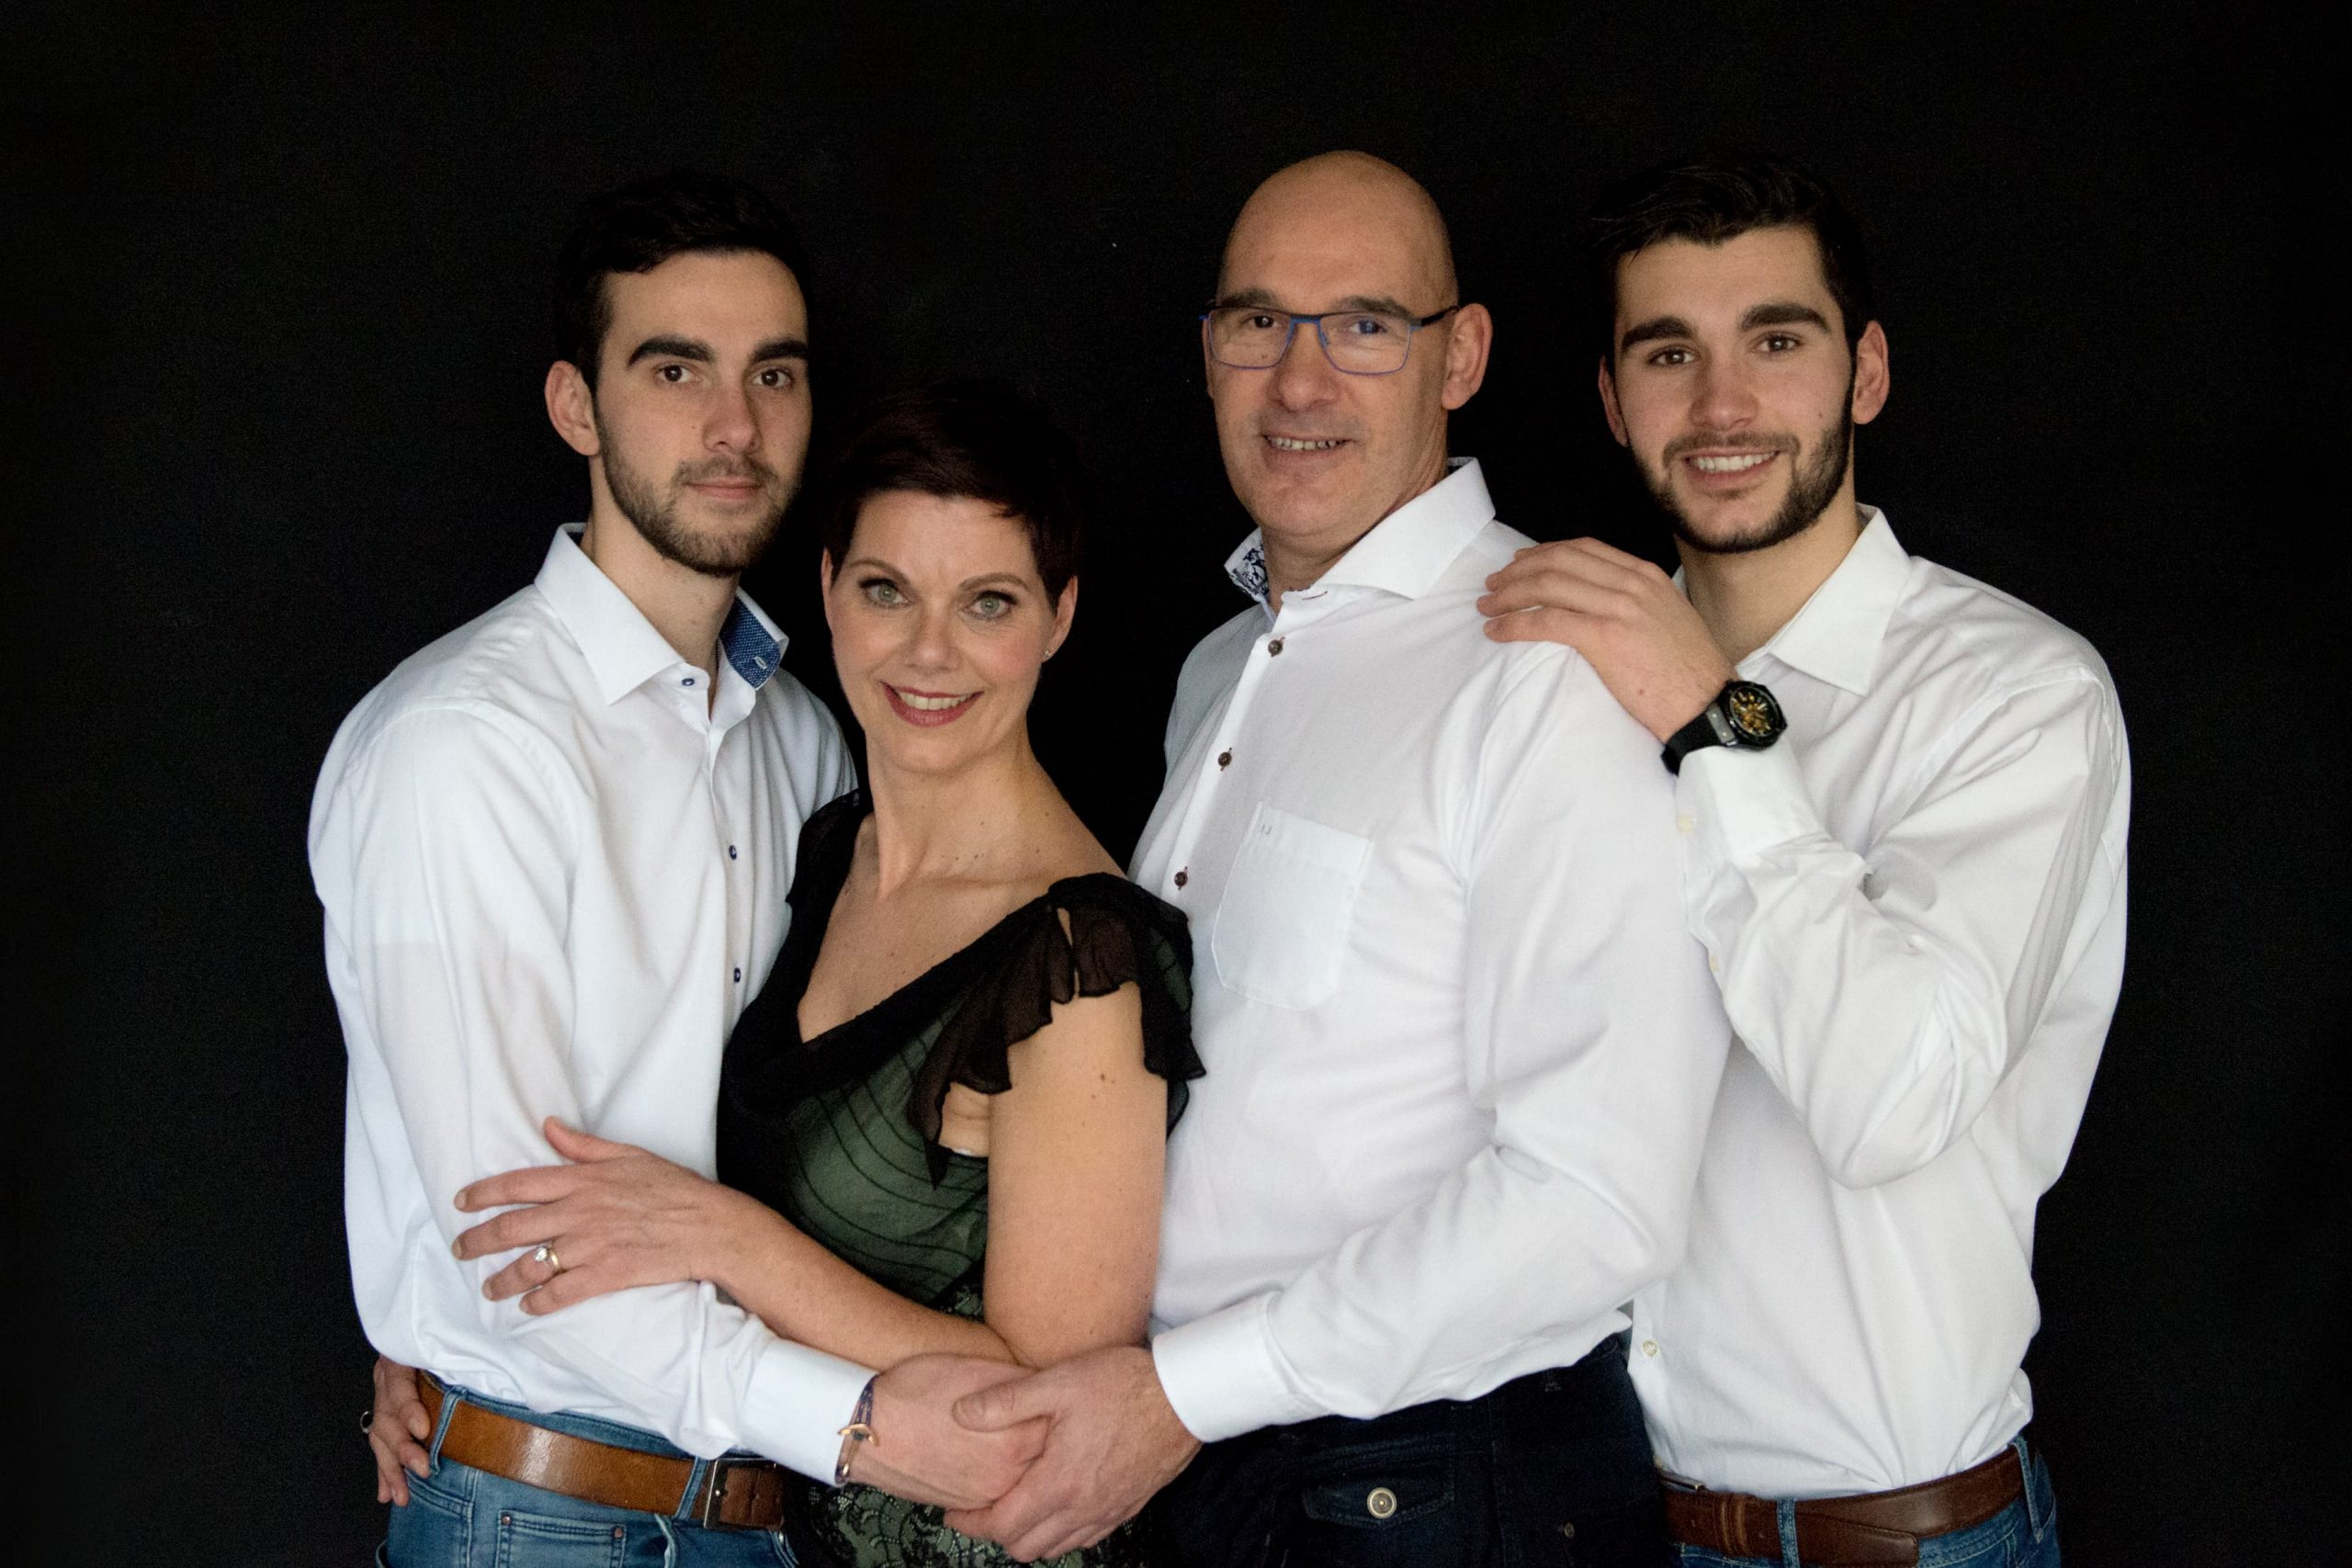 Family Portraits familie fotoshoot witte blouse man vrouw